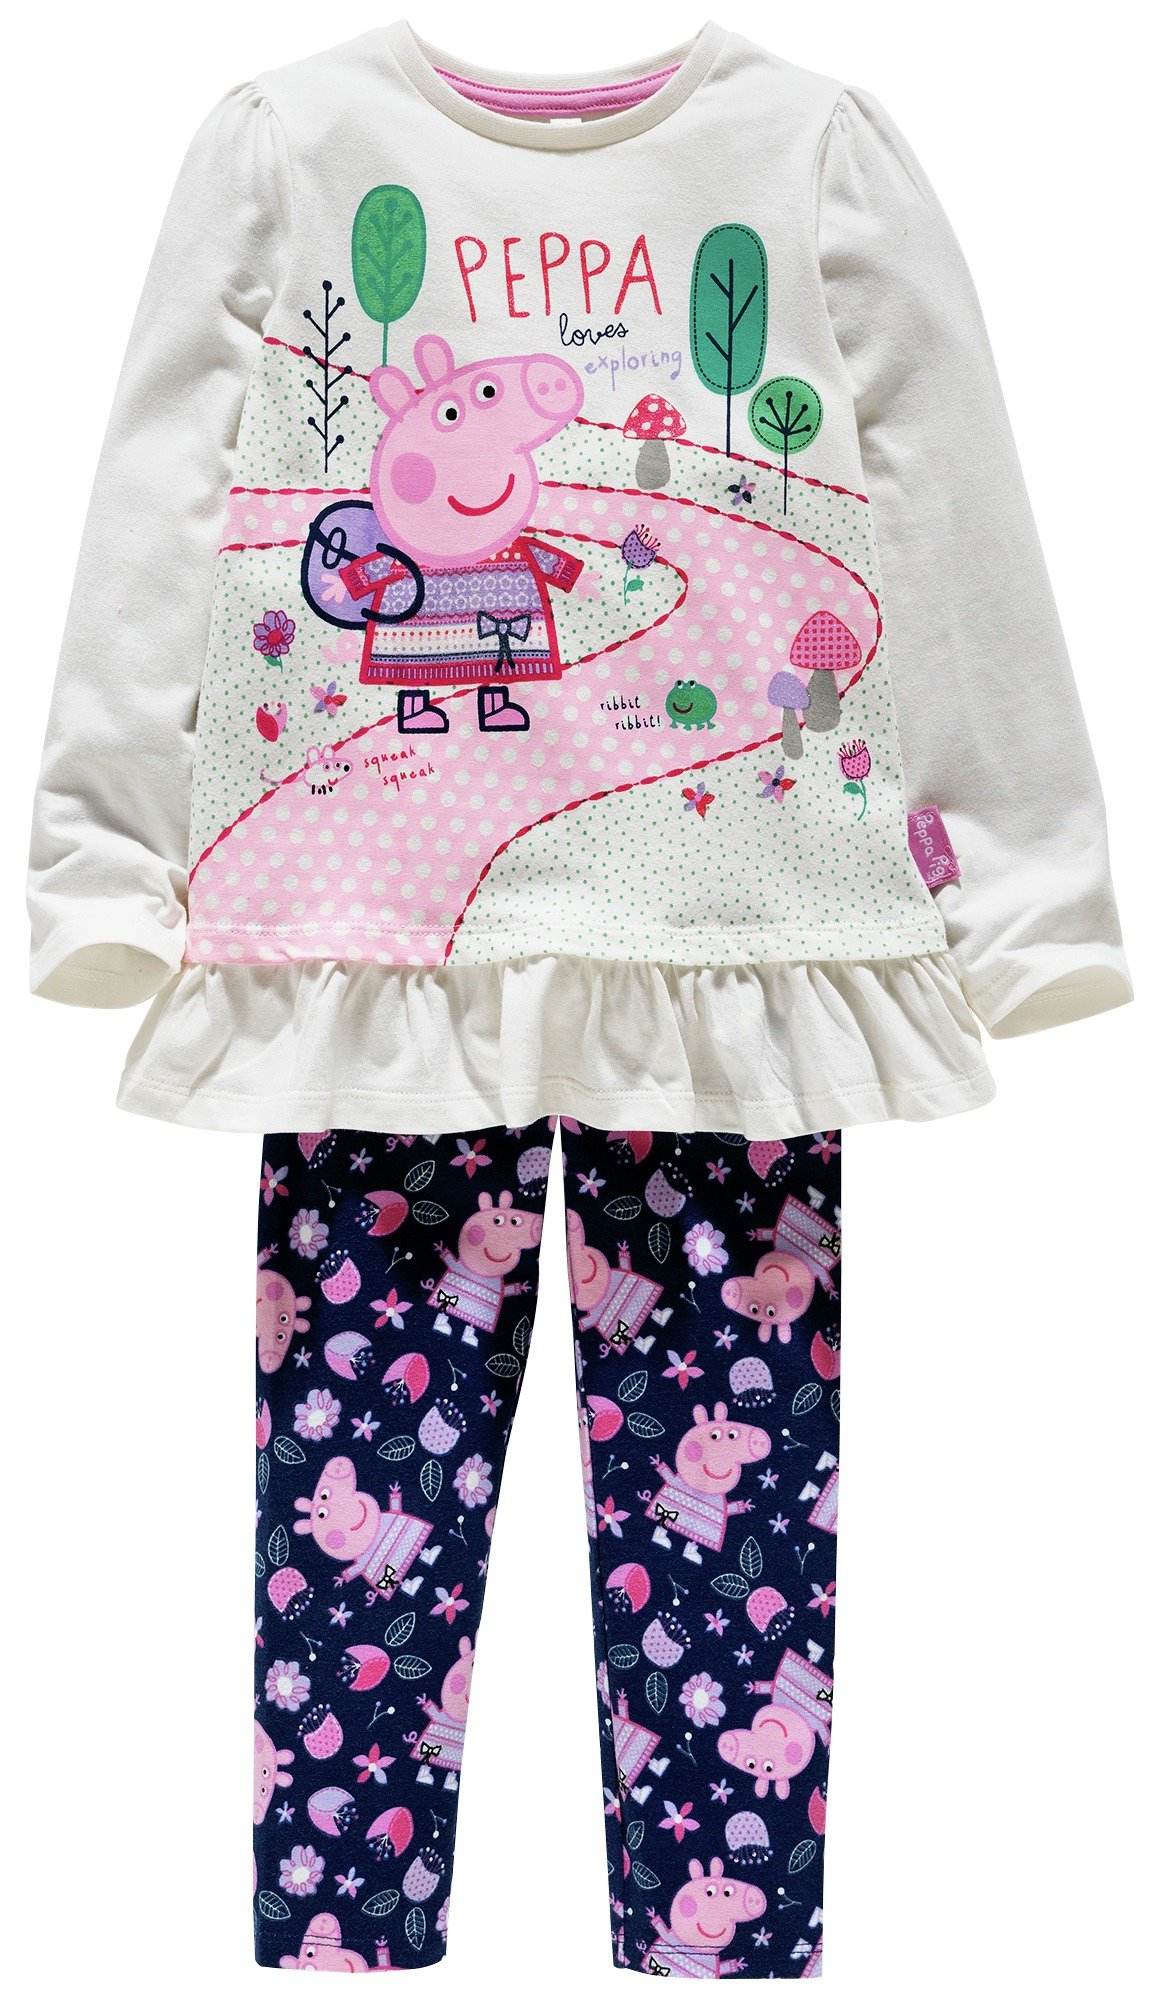 Image of Peppa Pig Top & Leggings Set - 2-3 Years